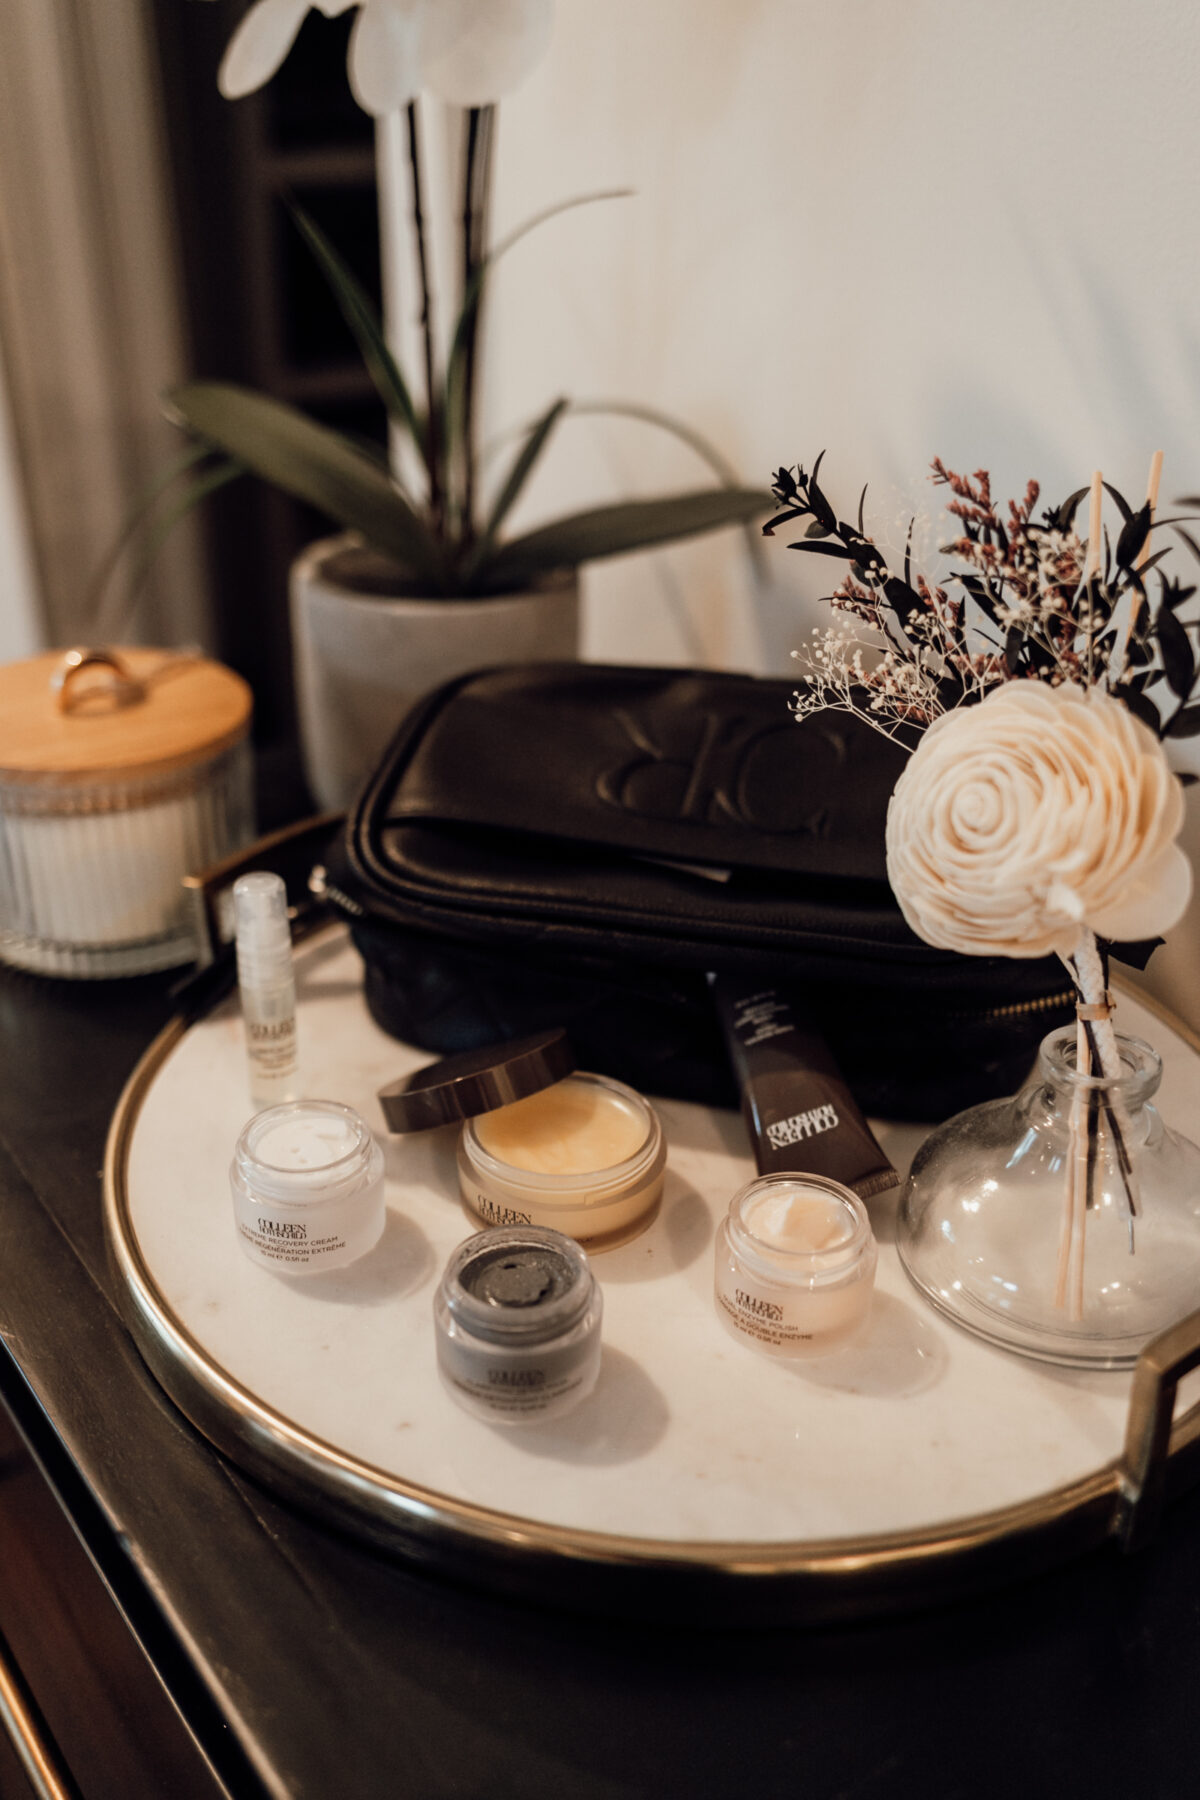 COLLEEN ROTHSCHILD BEAUTY products on top of a white tray with flowers and a black pouch